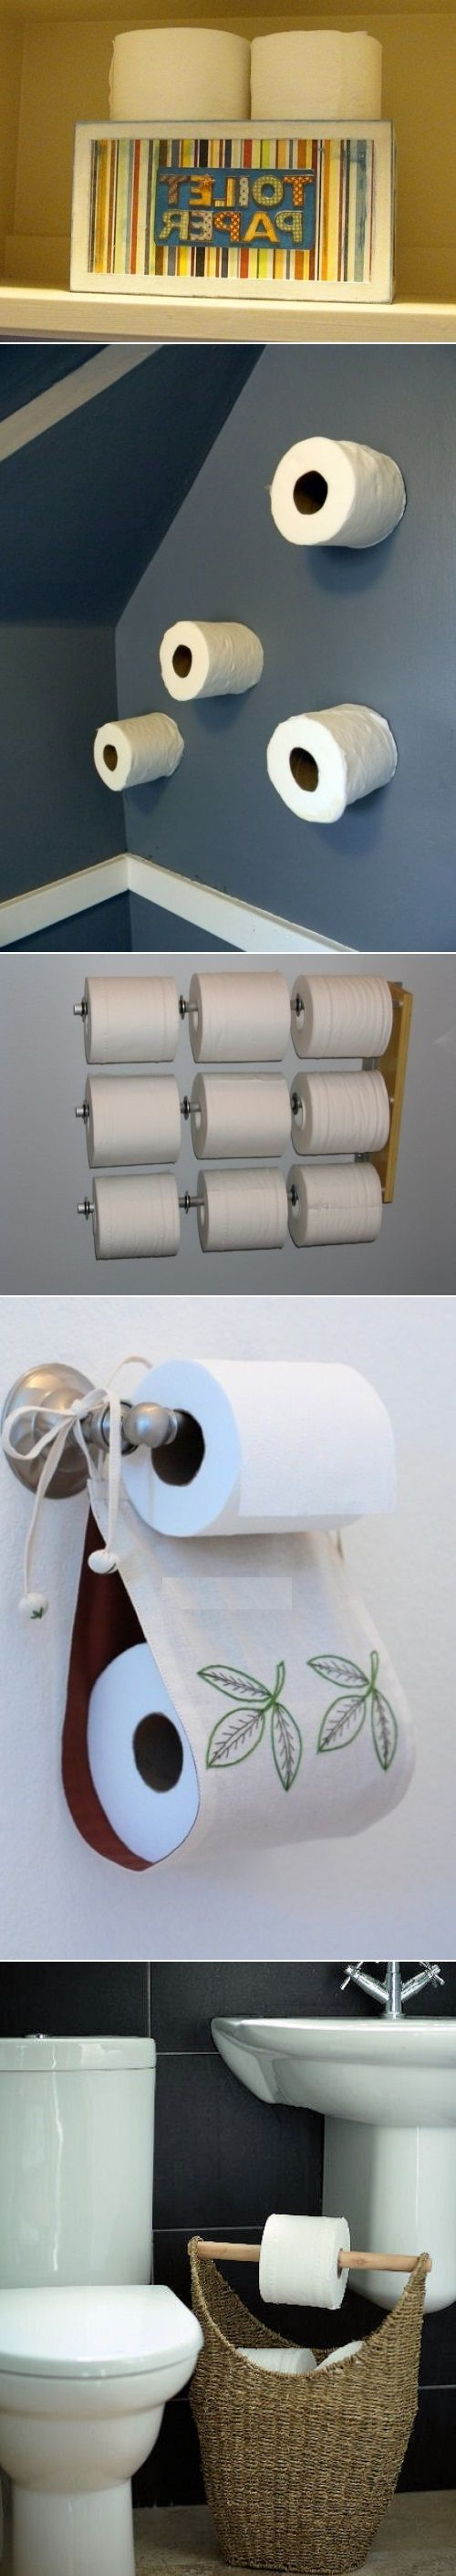 Diy toilet paper storage solutions for the home for Diy toilet paper storage ideas